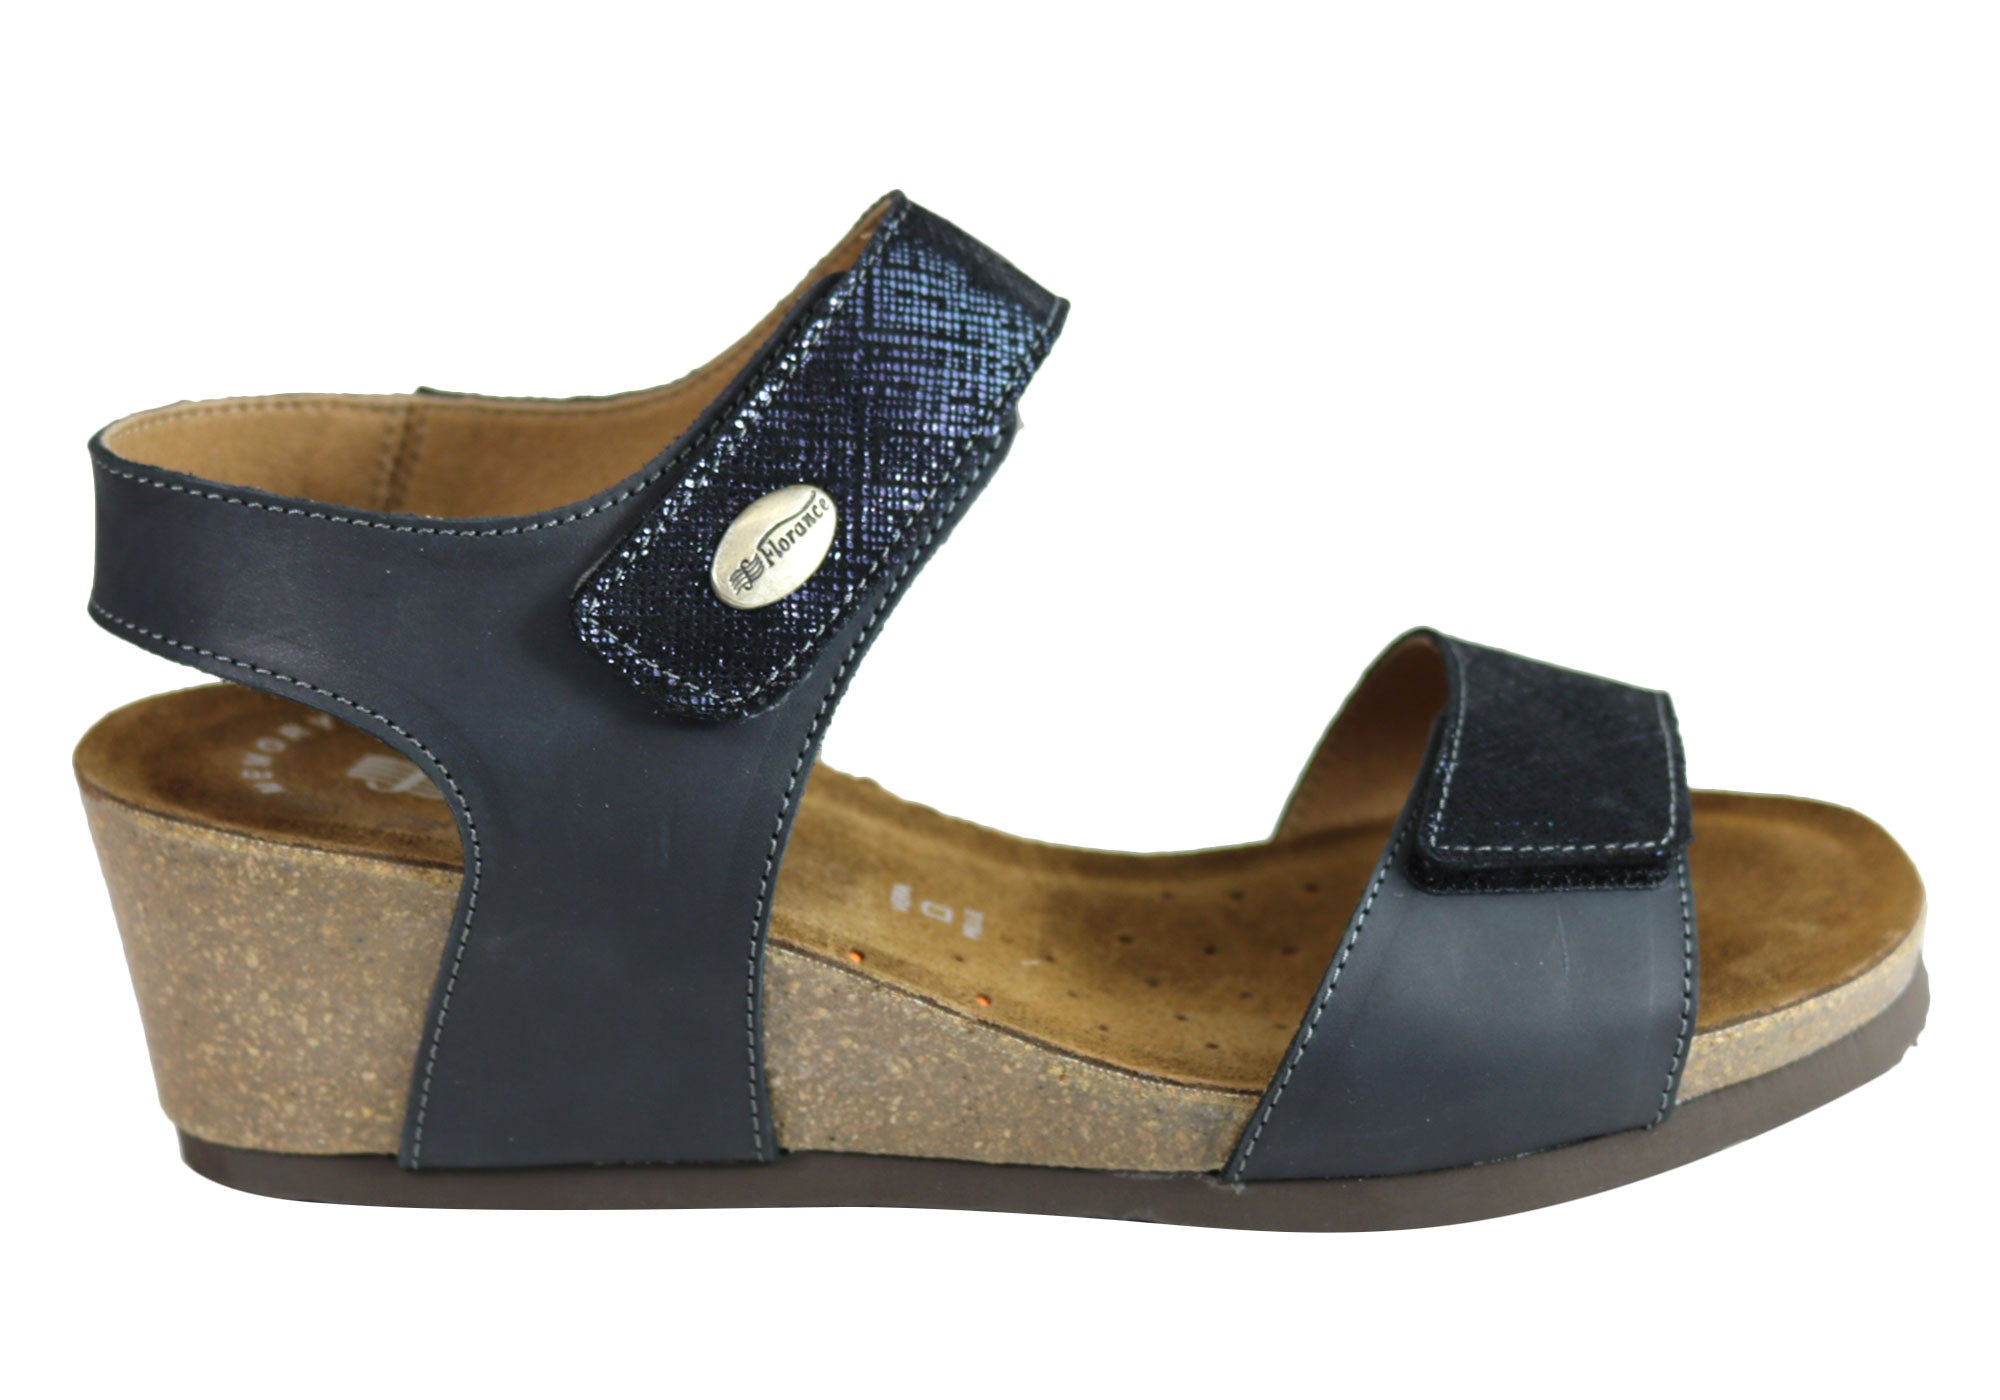 ea3330ef72 Florance 39718 Womens Leather Comfortable Wedge Sandals Made in ...